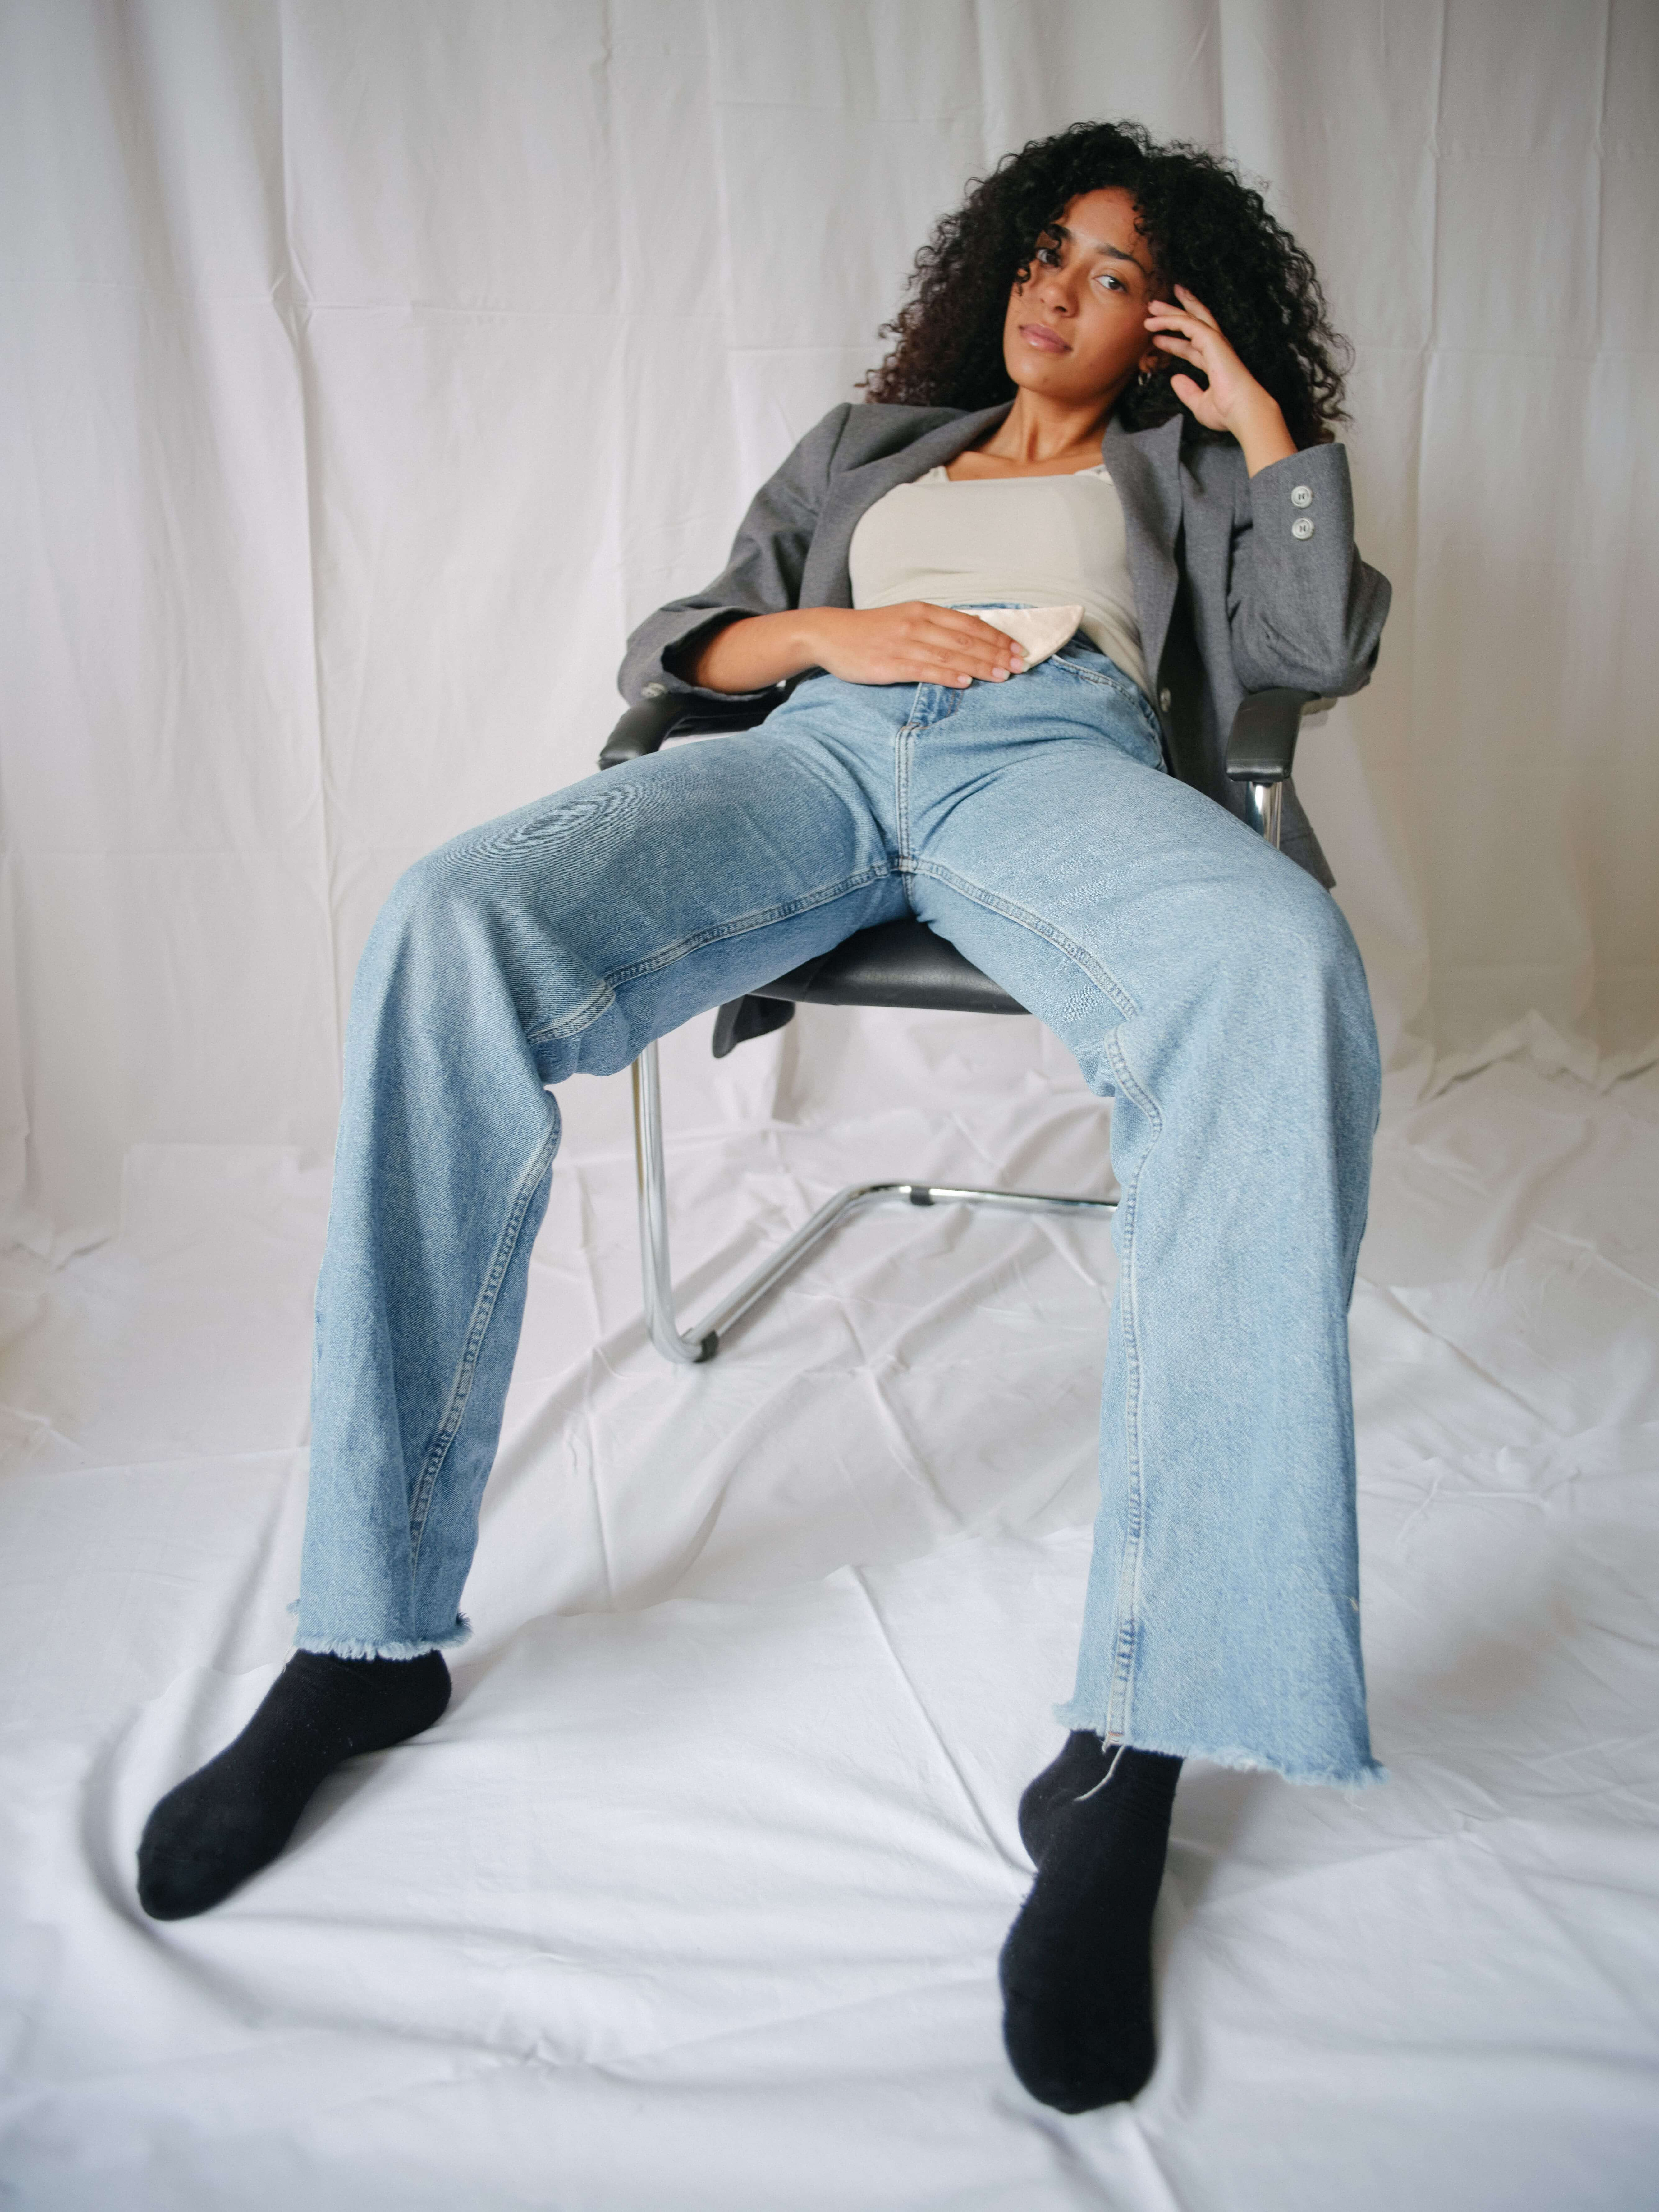 a coole pose of a young woman wearing the moon-pad.